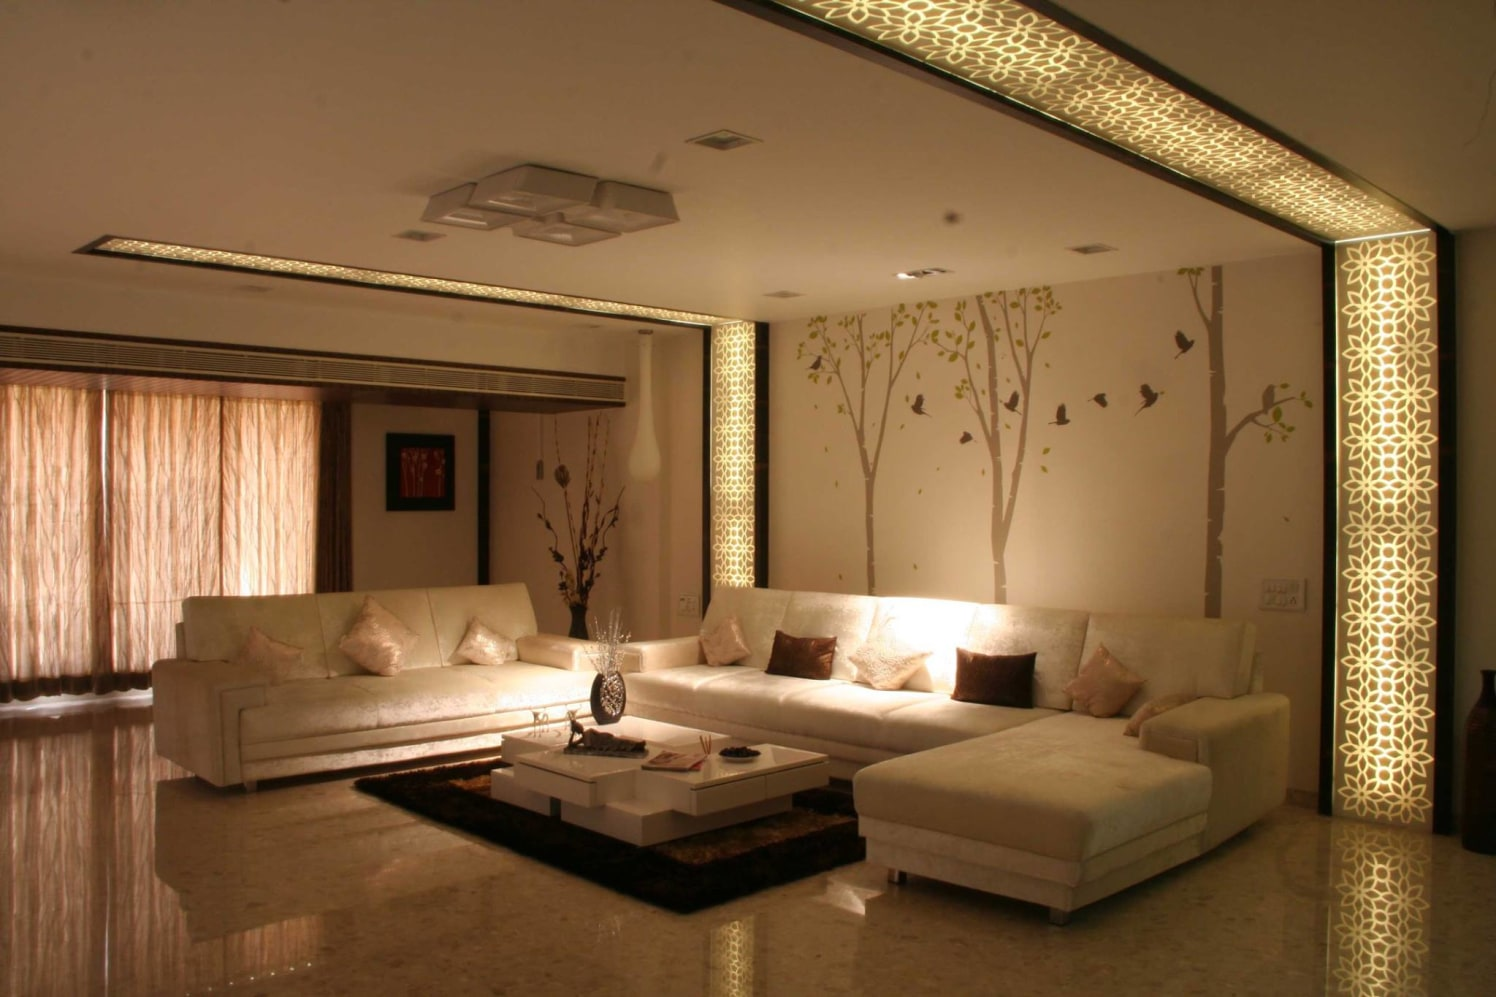 Living Room With Illuminating Wall Frames by Ankur Tulsyan  Living-room Modern | Interior Design Photos & Ideas